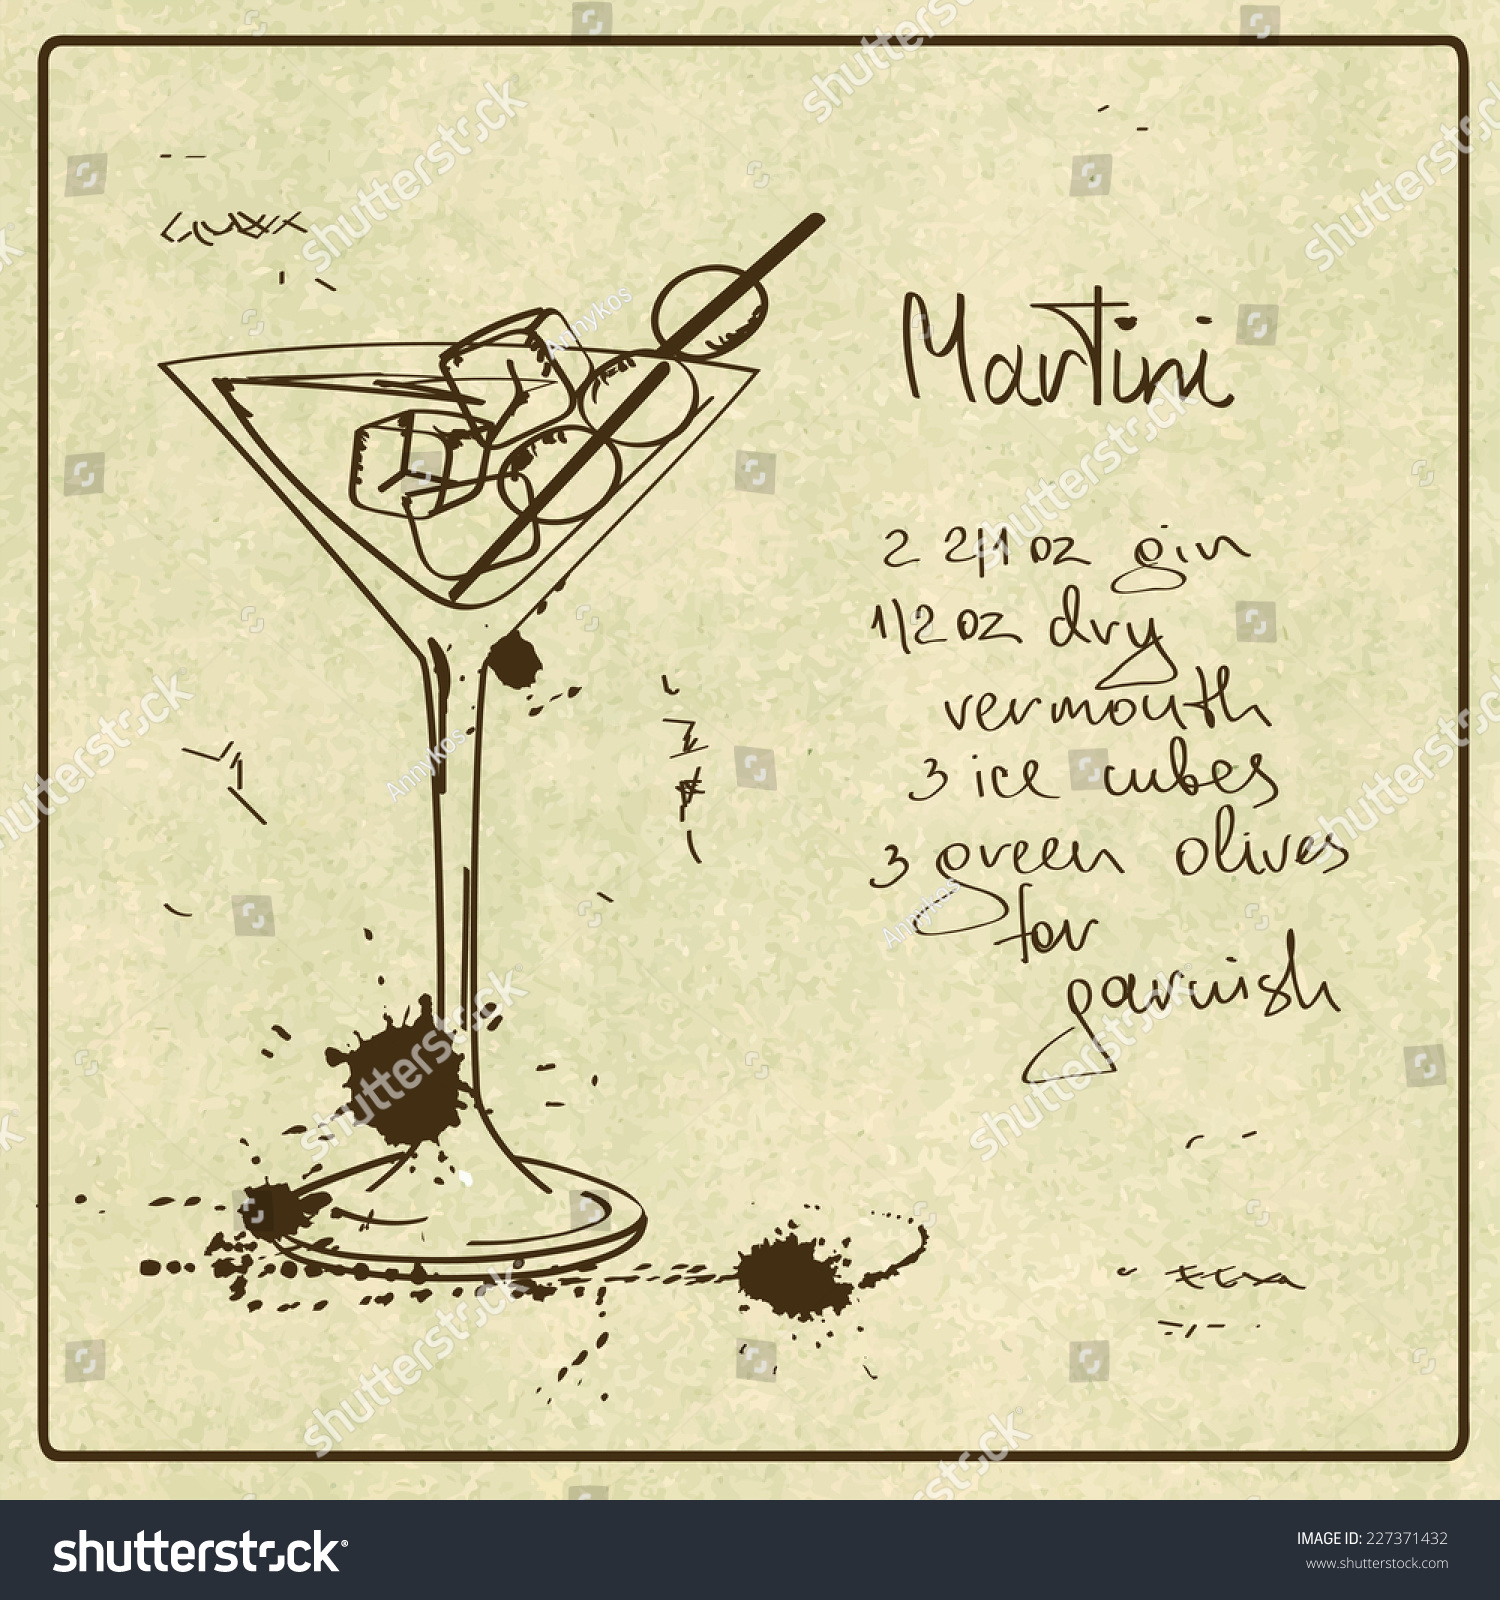 Illustration hand drawn sketch martini cocktail stock for Cocktail recipes with ingredients on hand